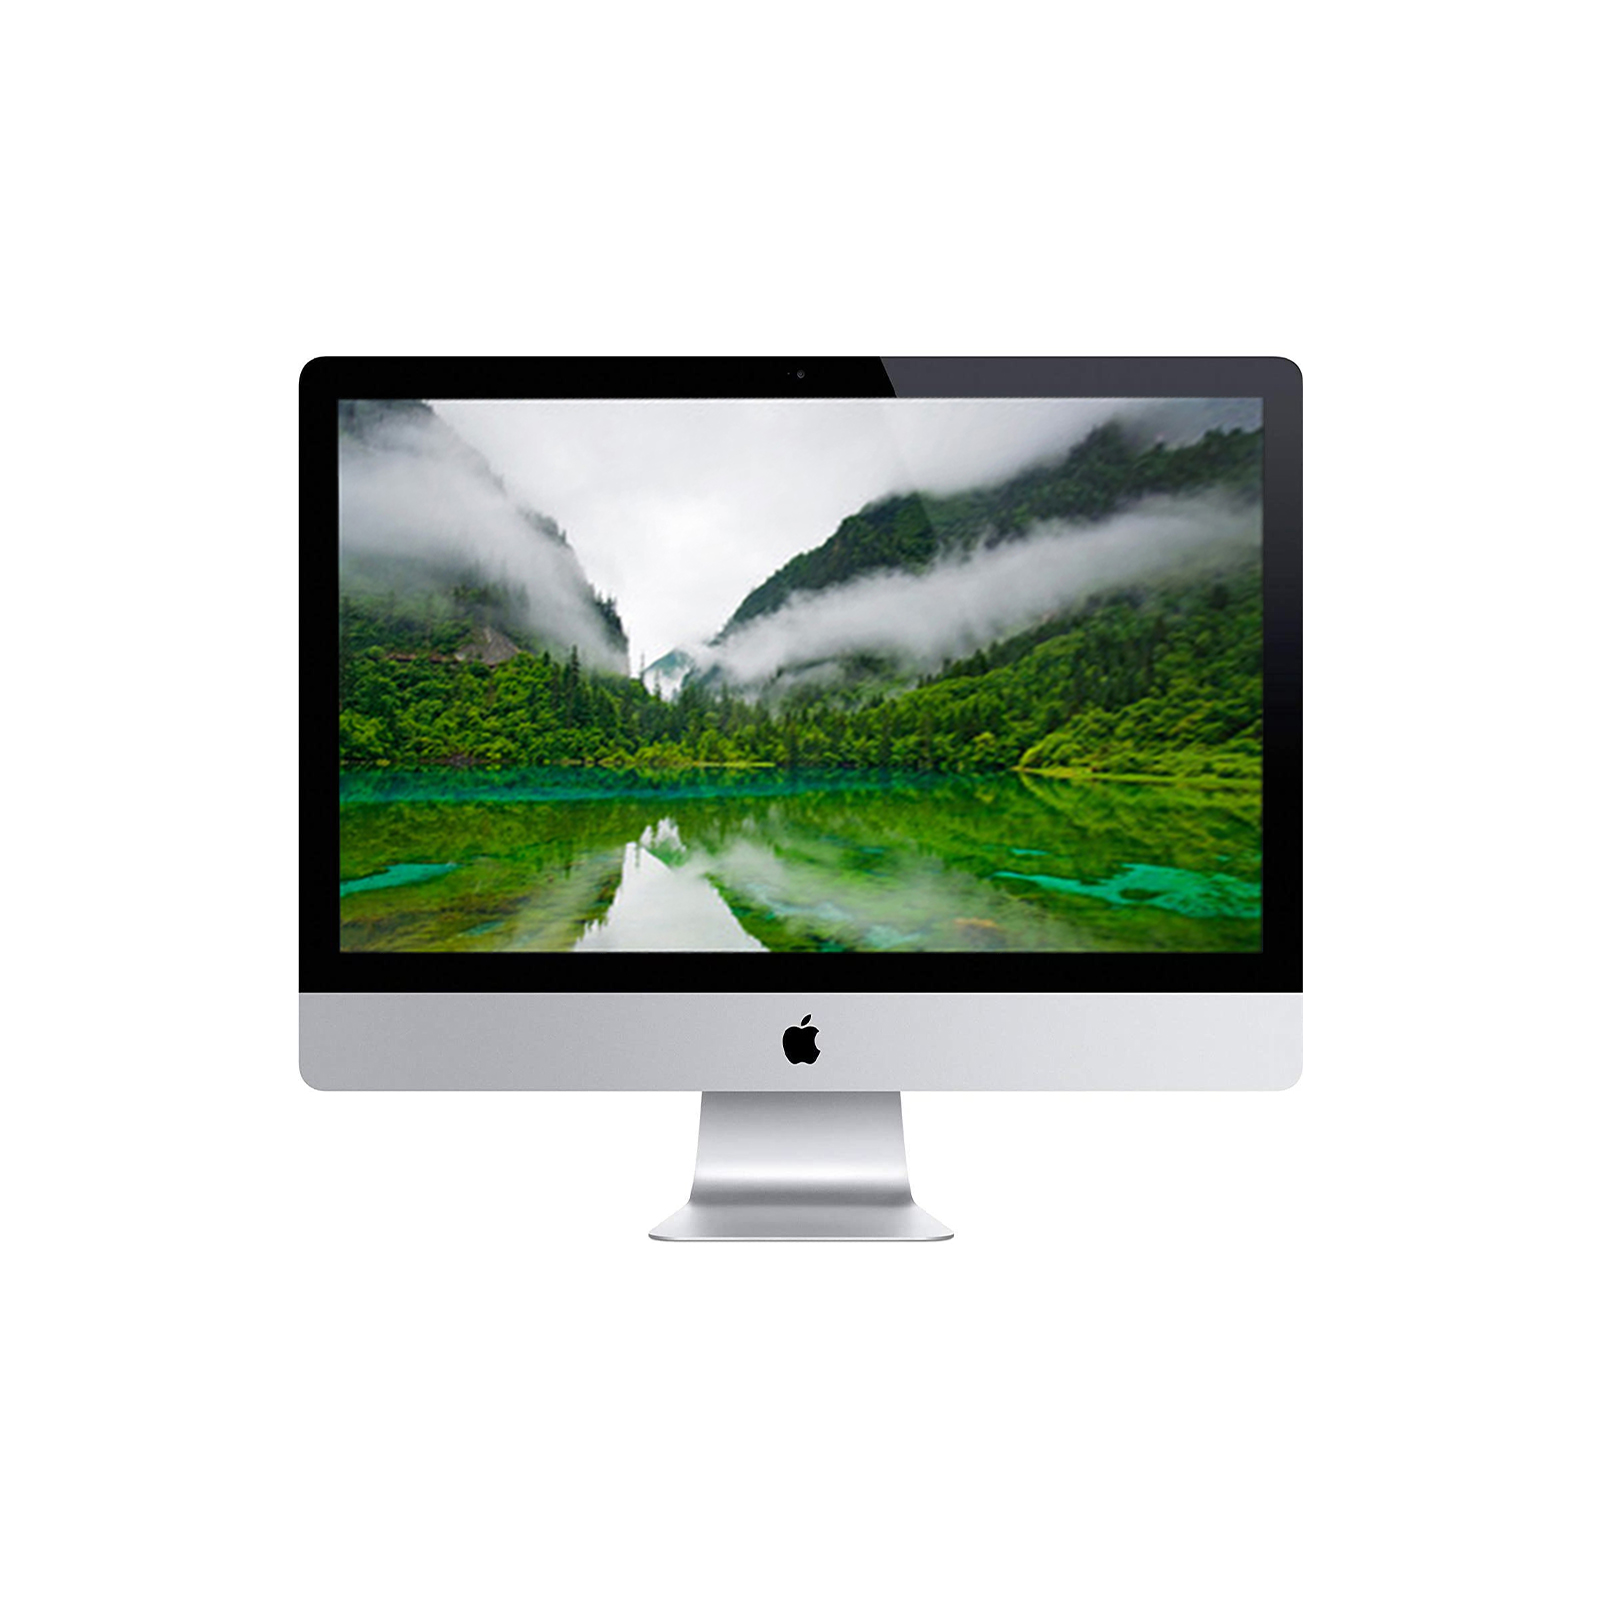 "Apple iMac 21.5"" Late 2013 - Core i5 2.9GHz 8GB RAM 1TB HDD [As New] [6M]"